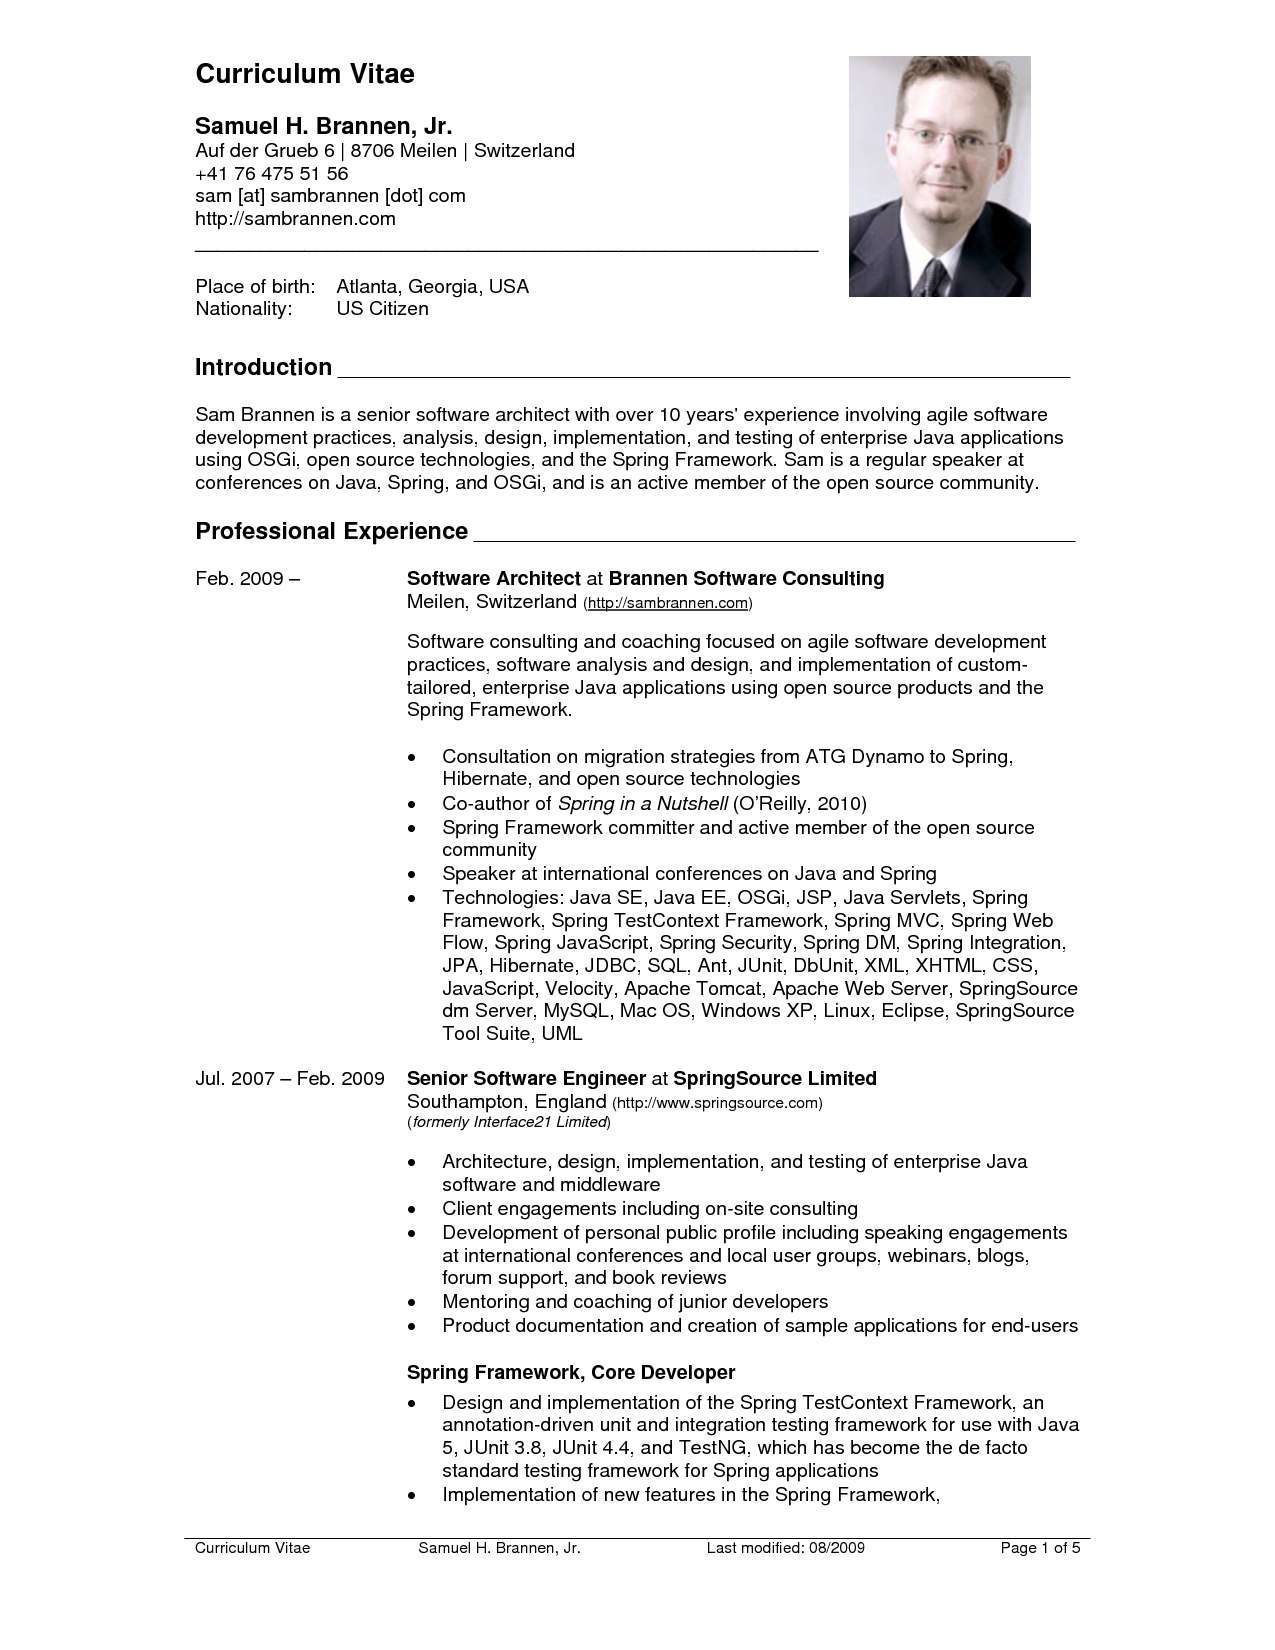 Do my coursework for me flowlosangeles com        Glamorous Cv Format Example Examples Of Resumes